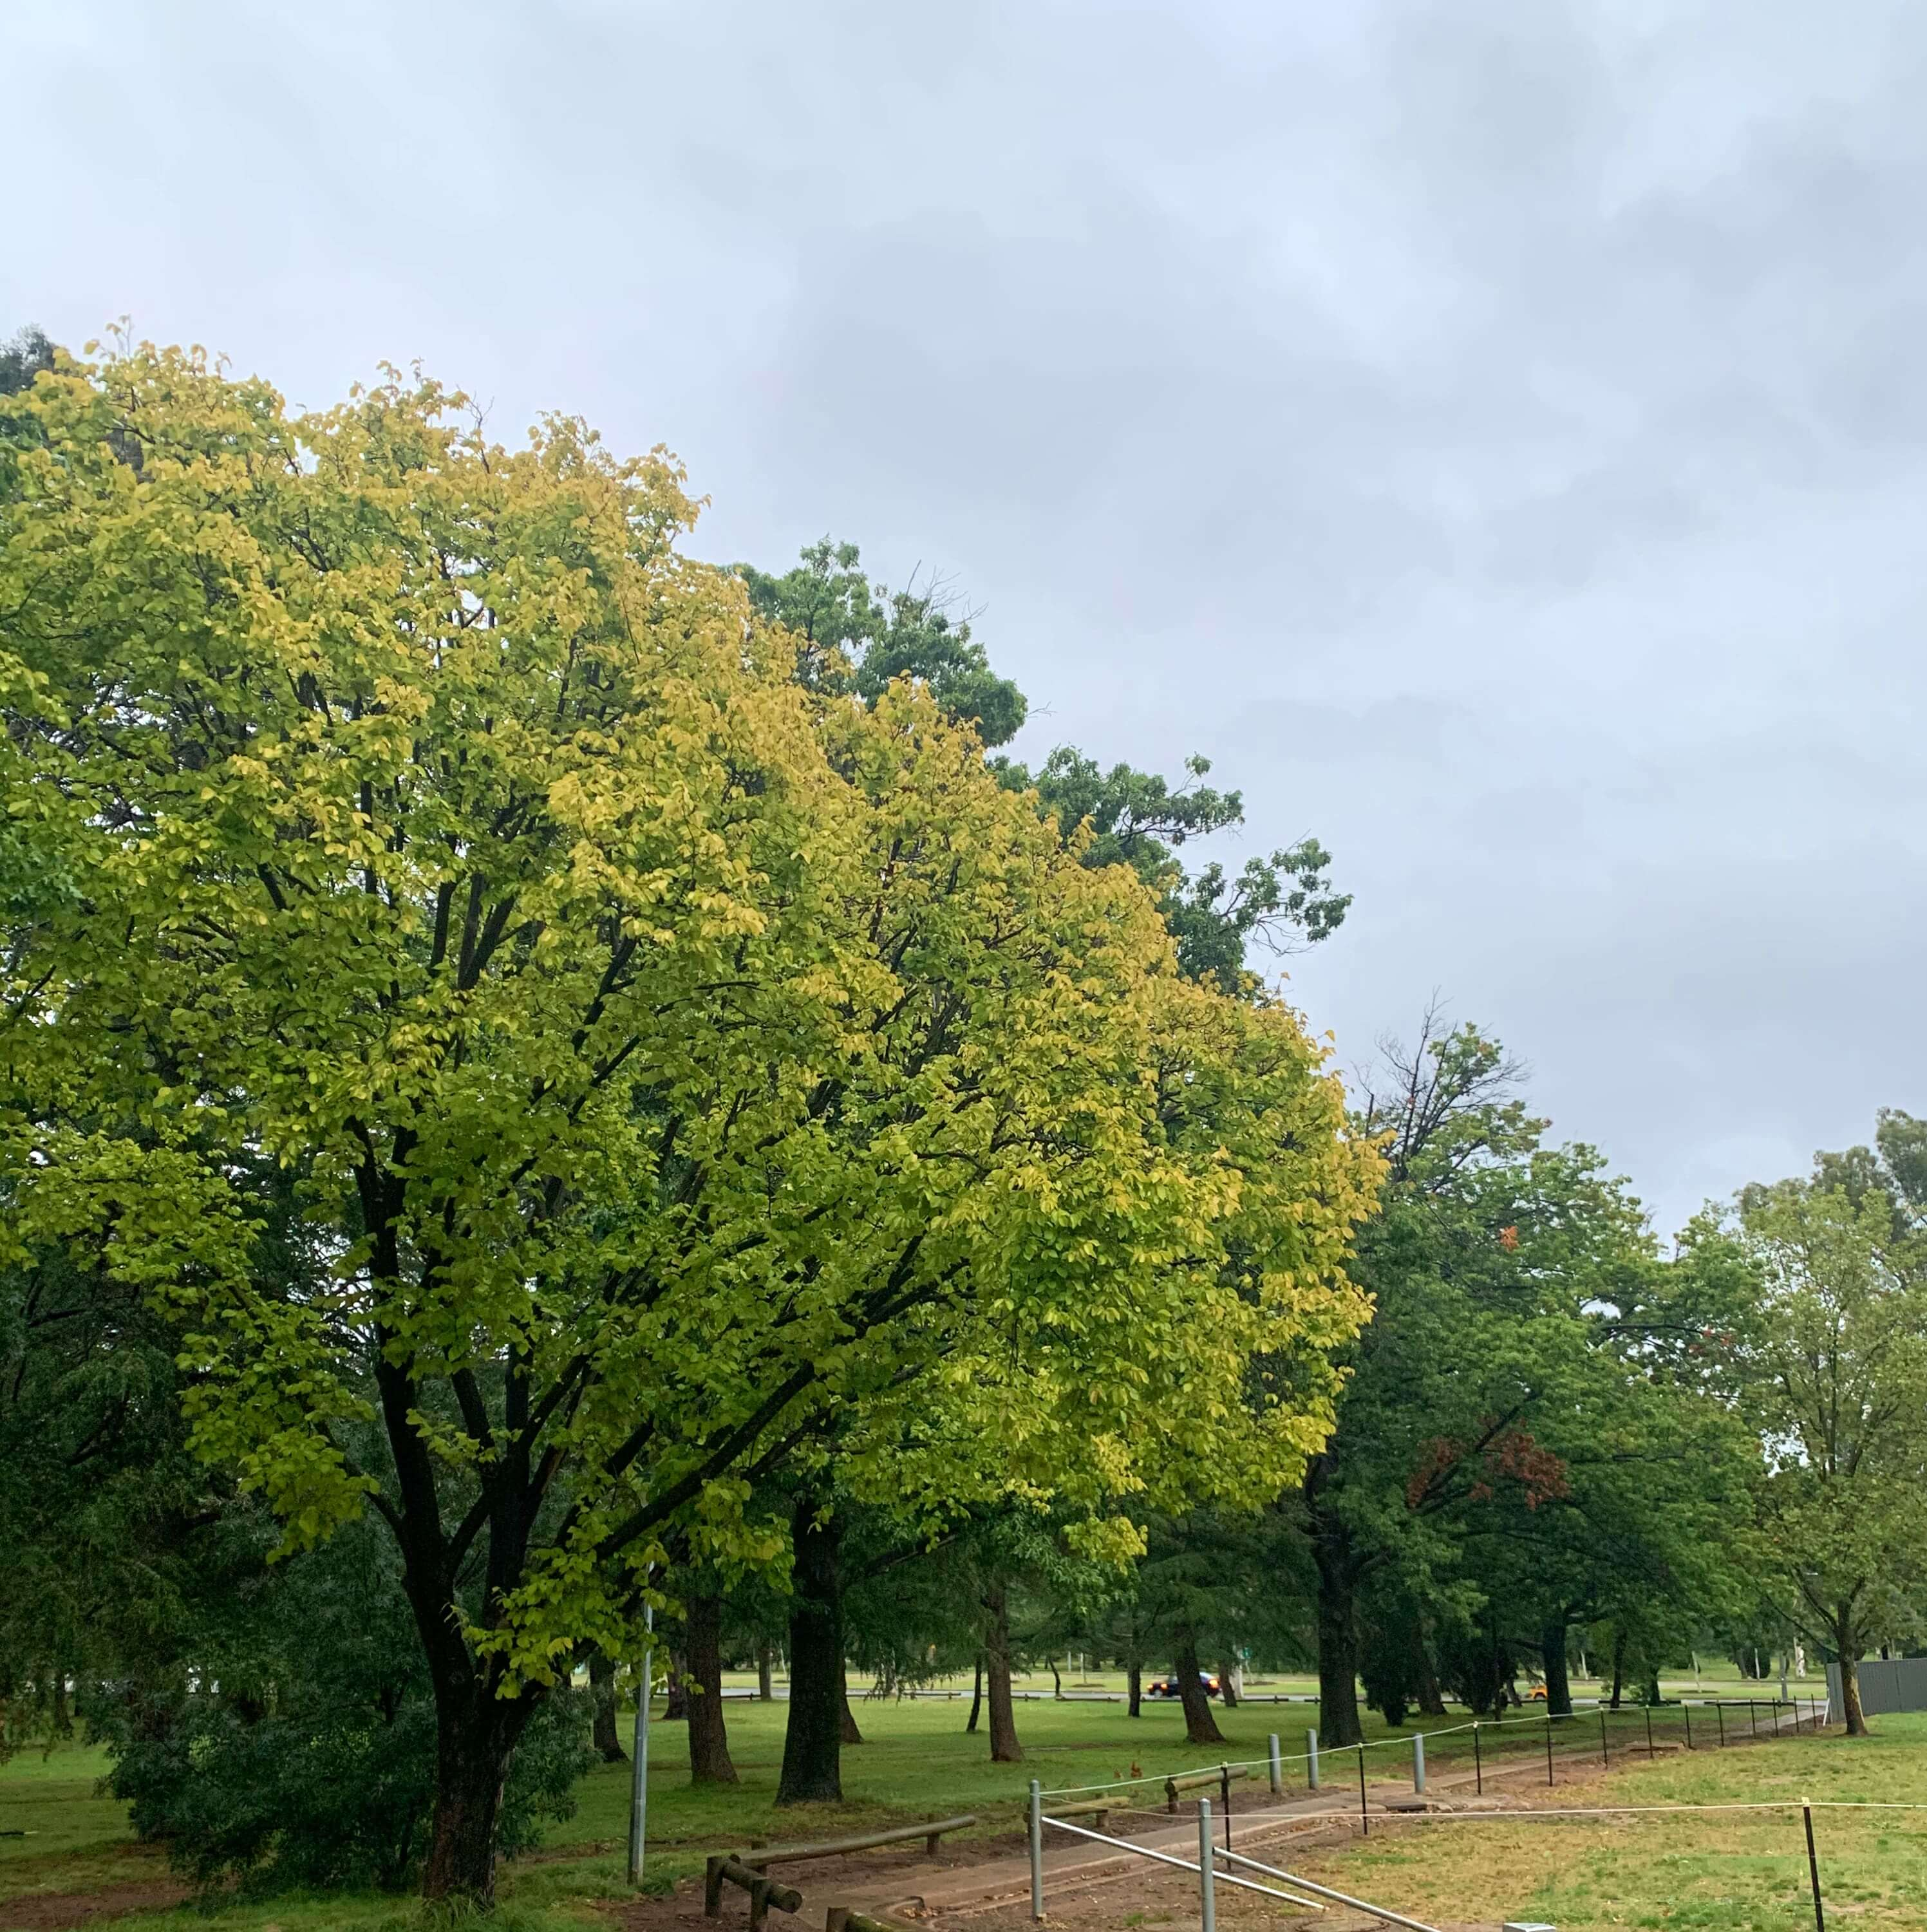 large trees by the foot path, the one in front has light green leaves and the others with darker green leaves